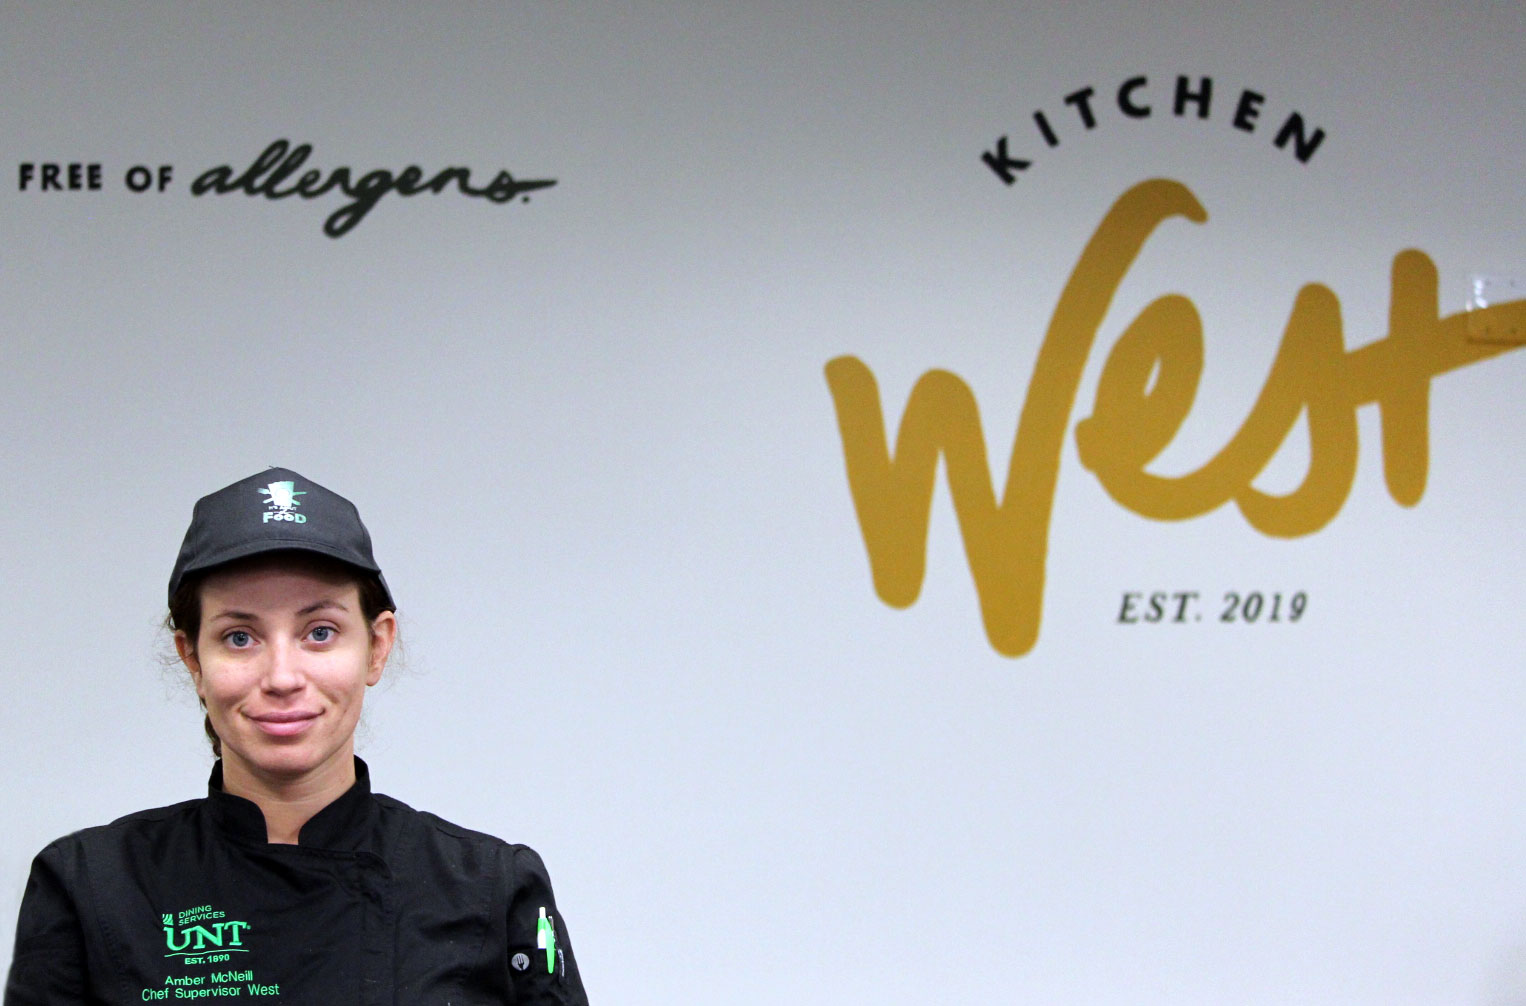 Amber Duncan at Kitchen West